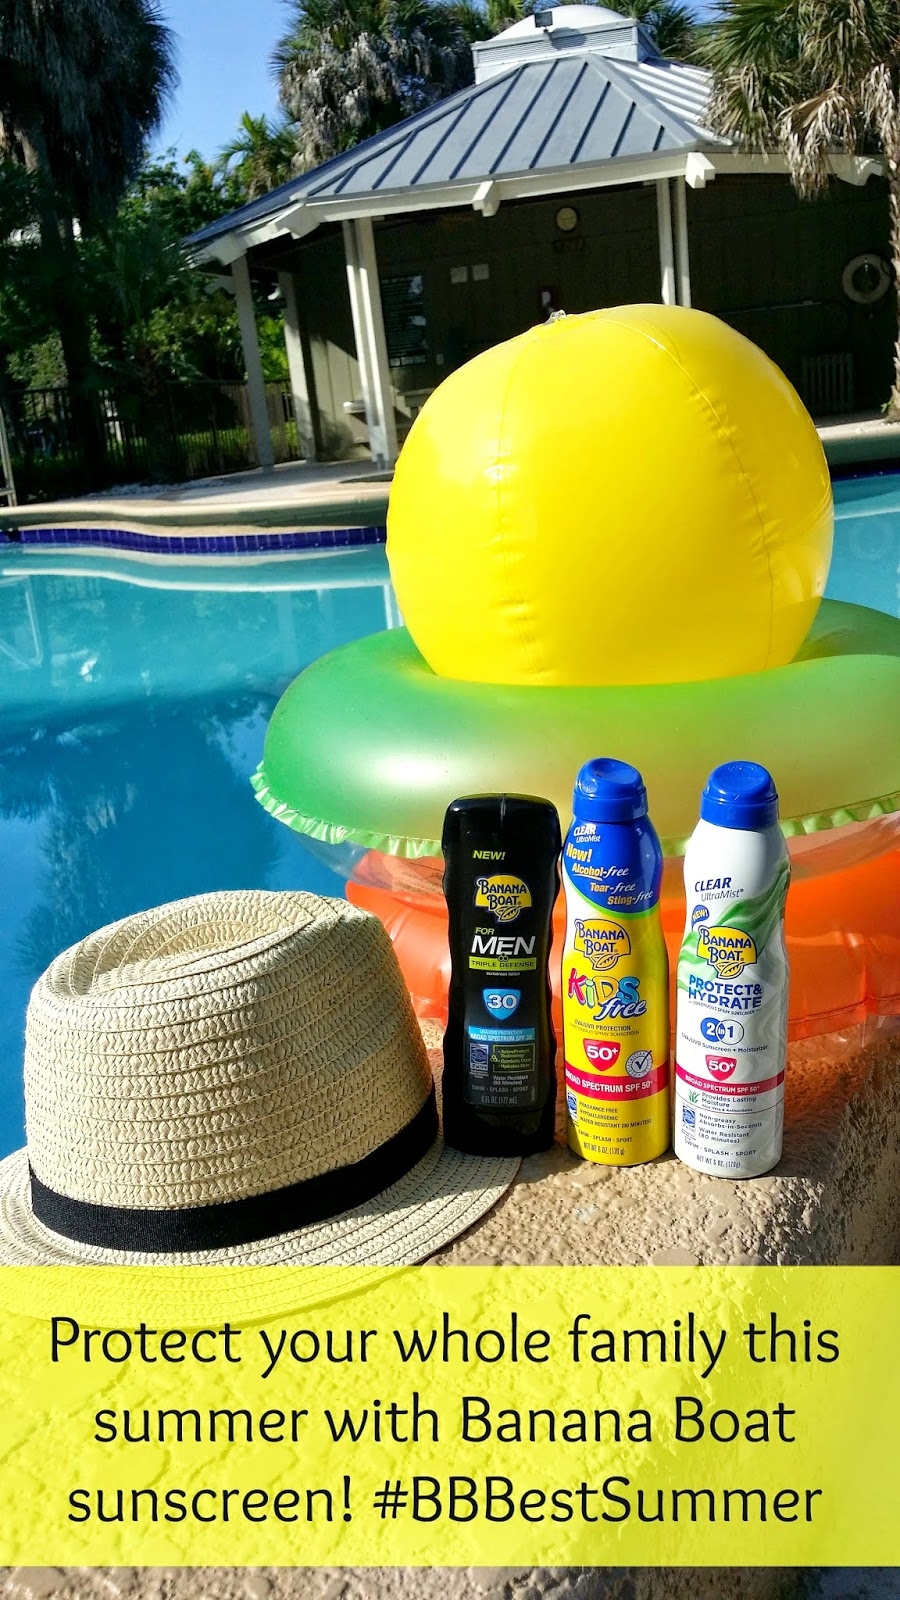 Protect-your-family-with-Banana-Boat-#BBBestSummer-#shop